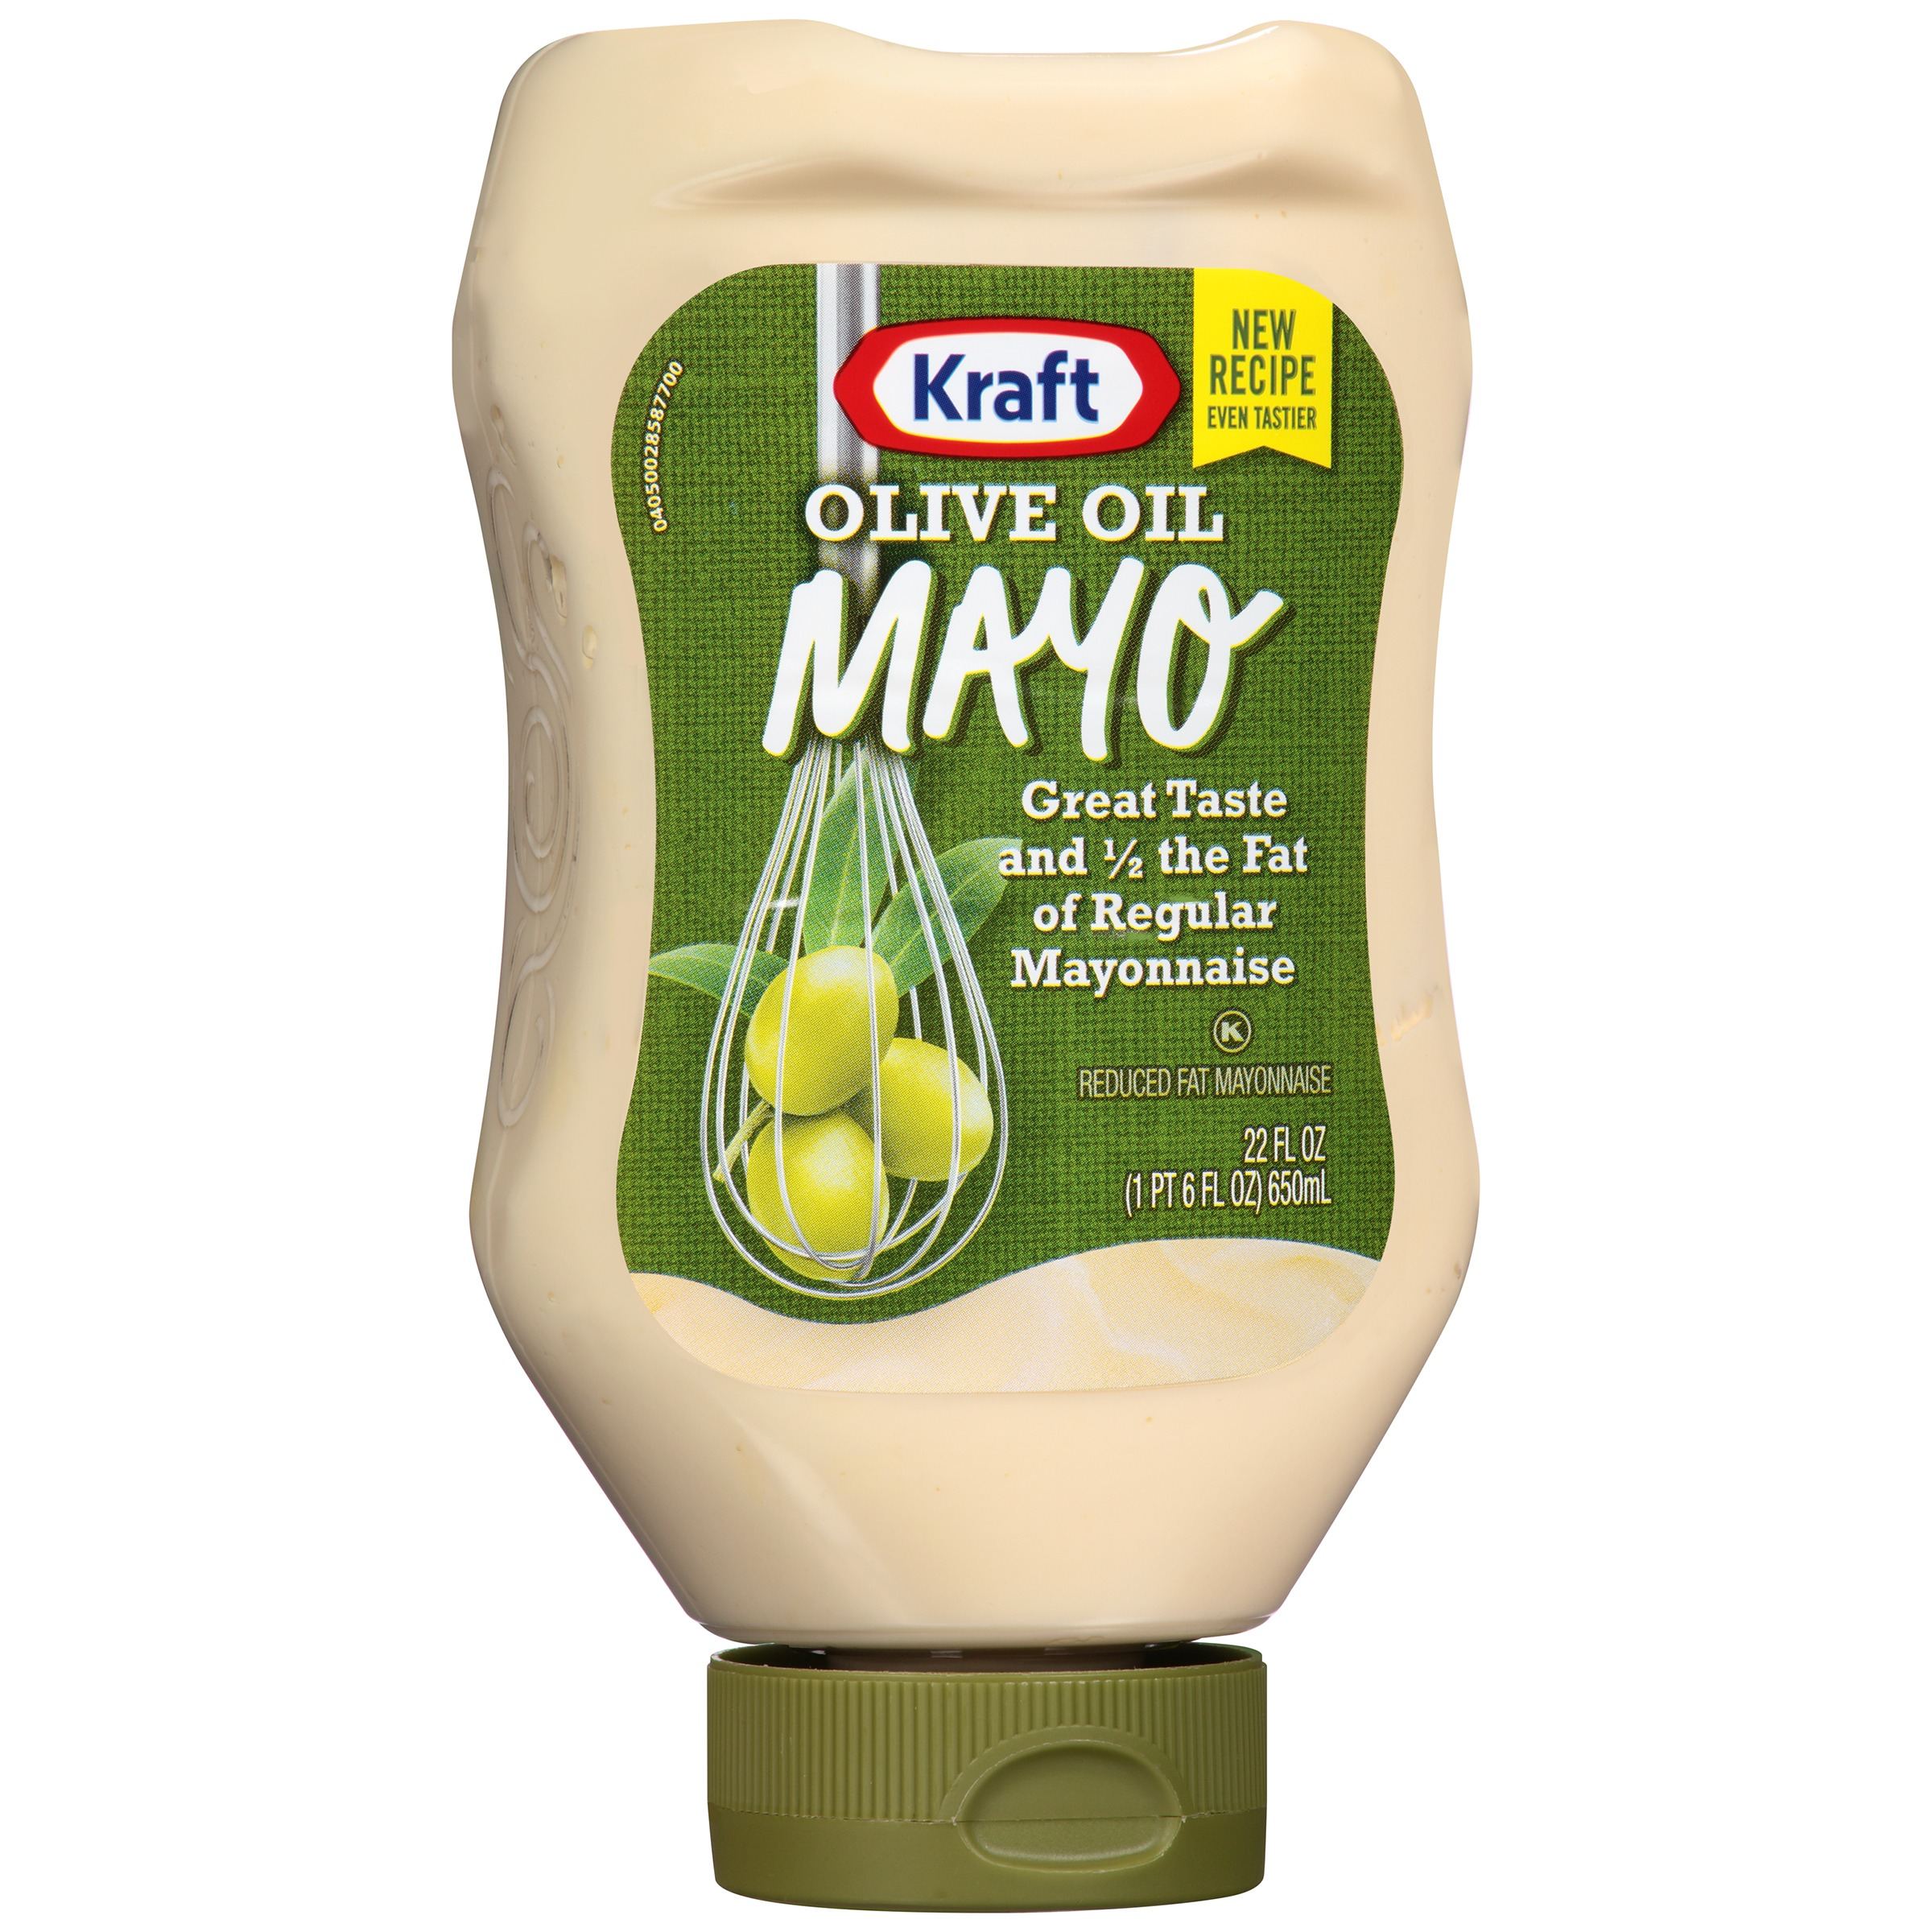 Kraft Olive Oil Reduced Fat Mayonnaise 22 fl. oz. Bottle